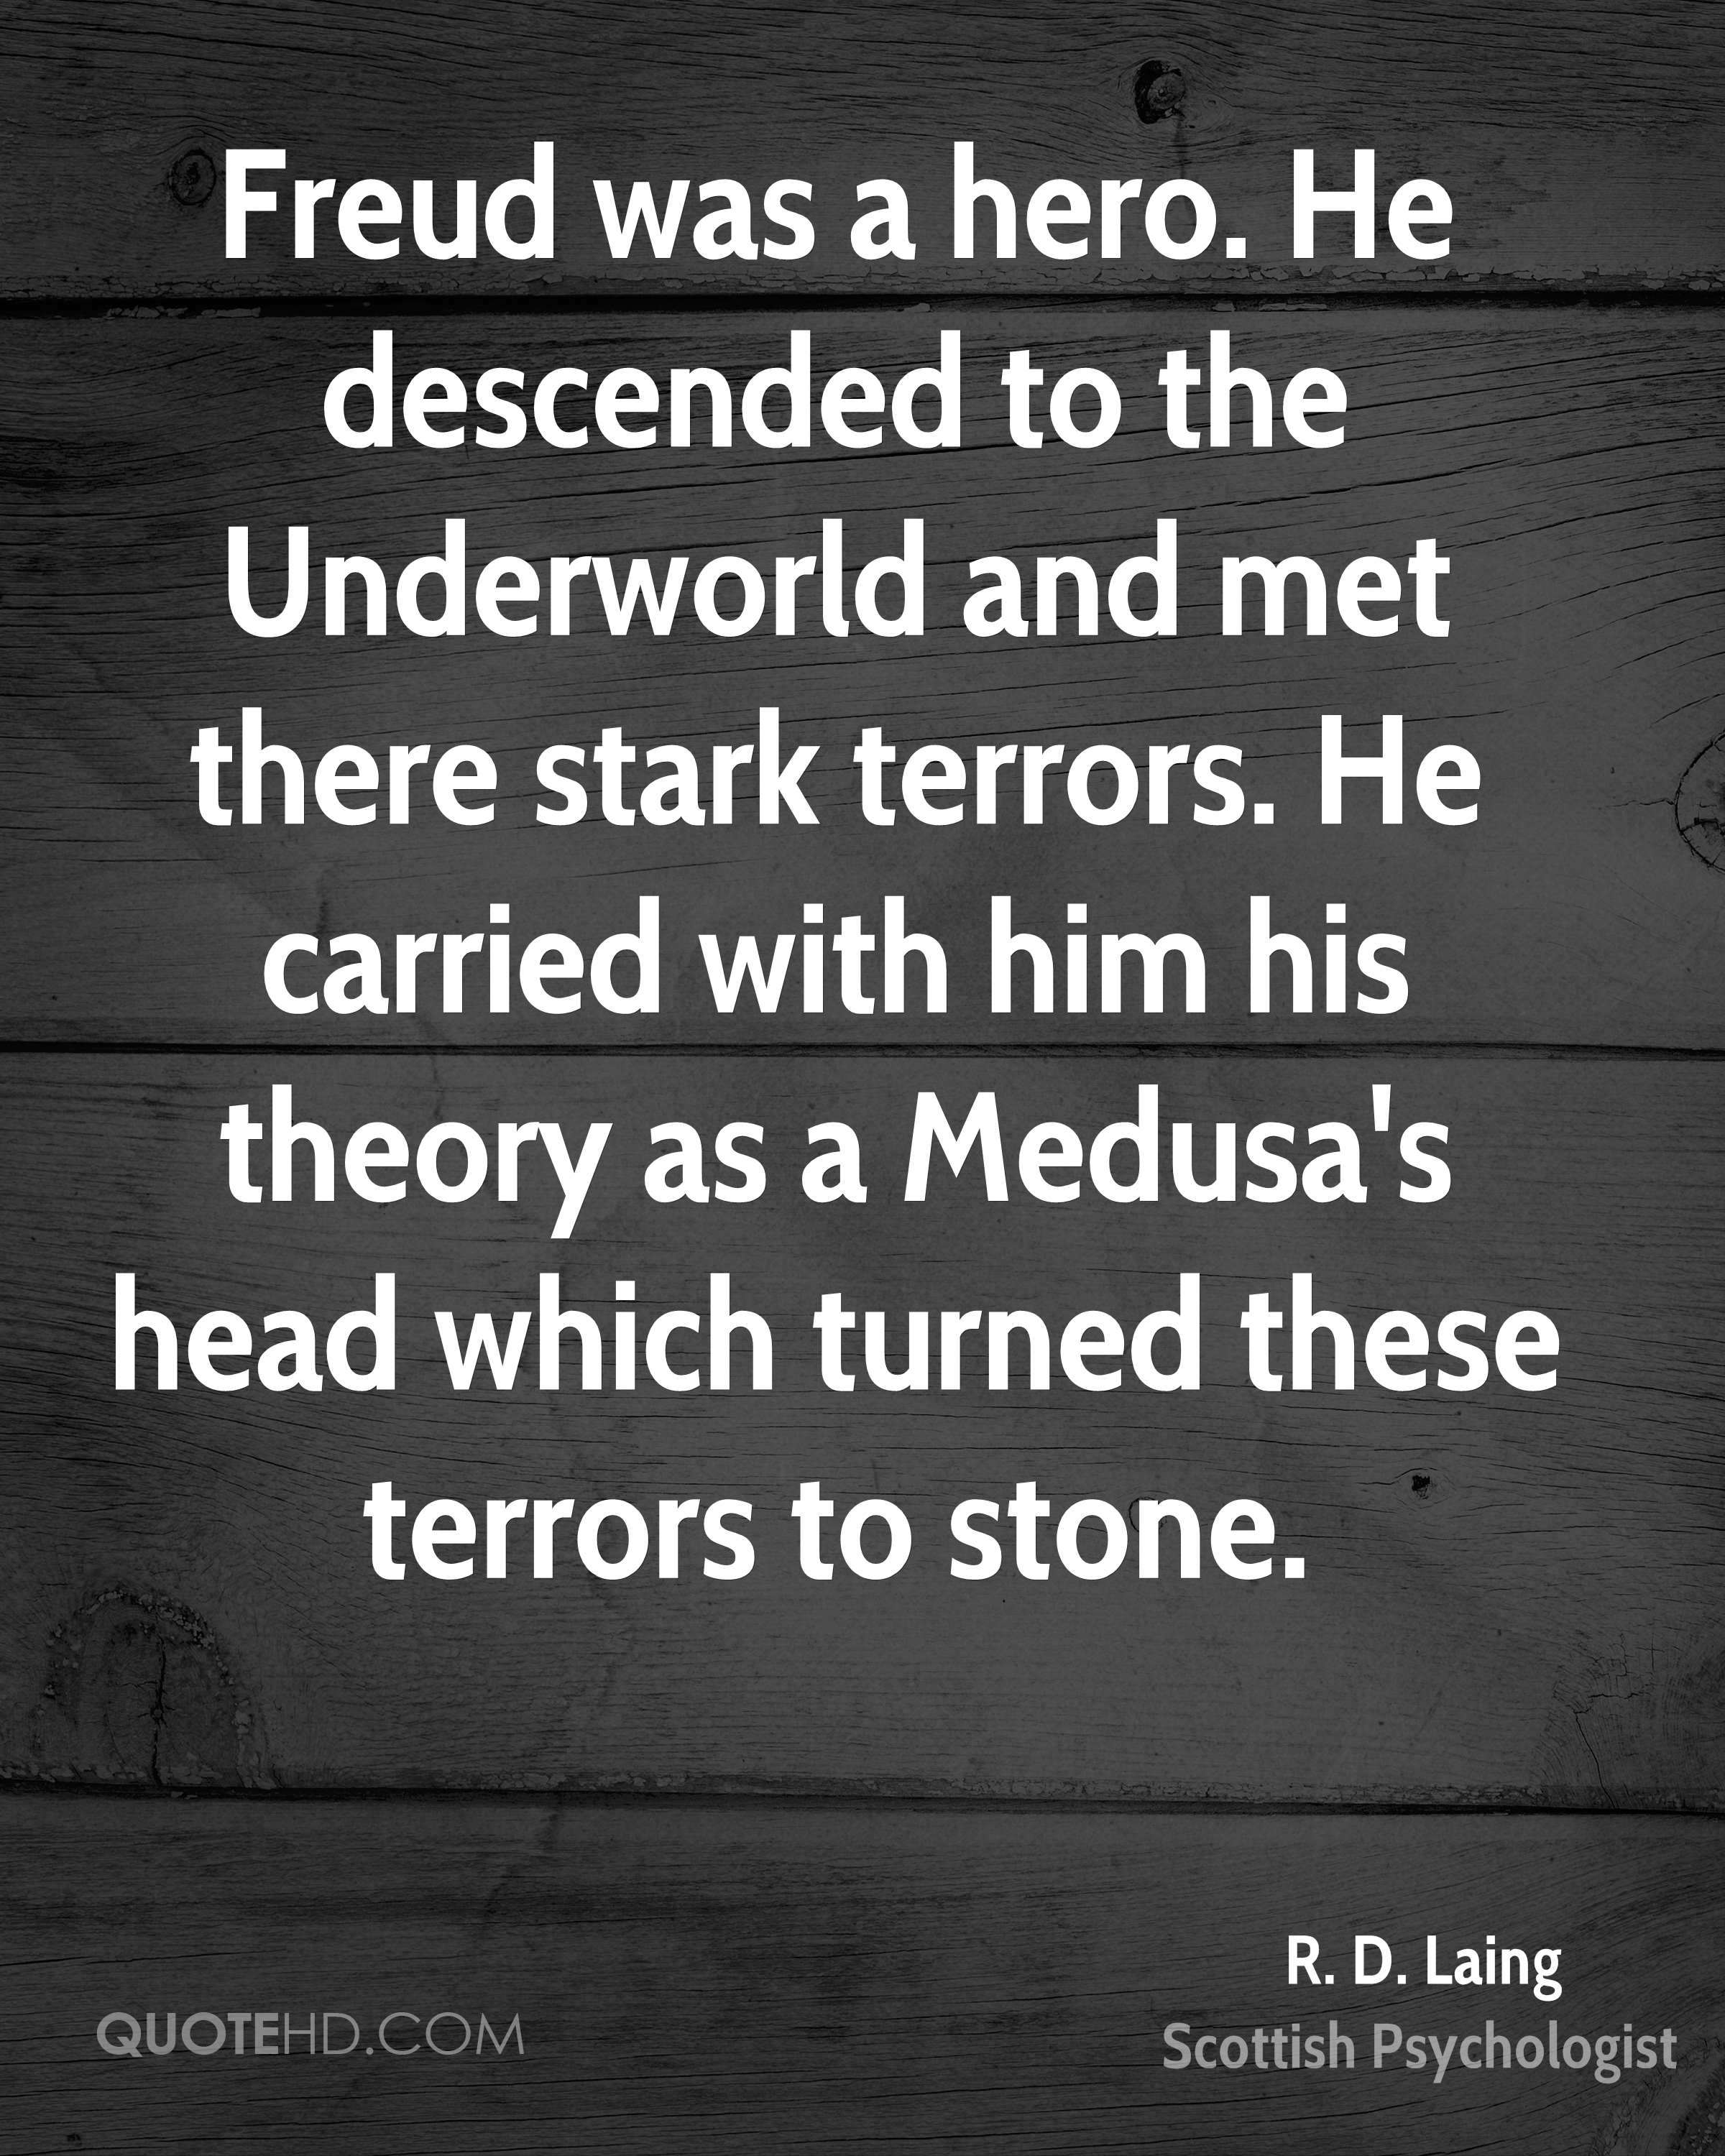 Freud was a hero. He descended to the Underworld and met there stark terrors. He carried with him his theory as a Medusa's head which turned these terrors to stone.